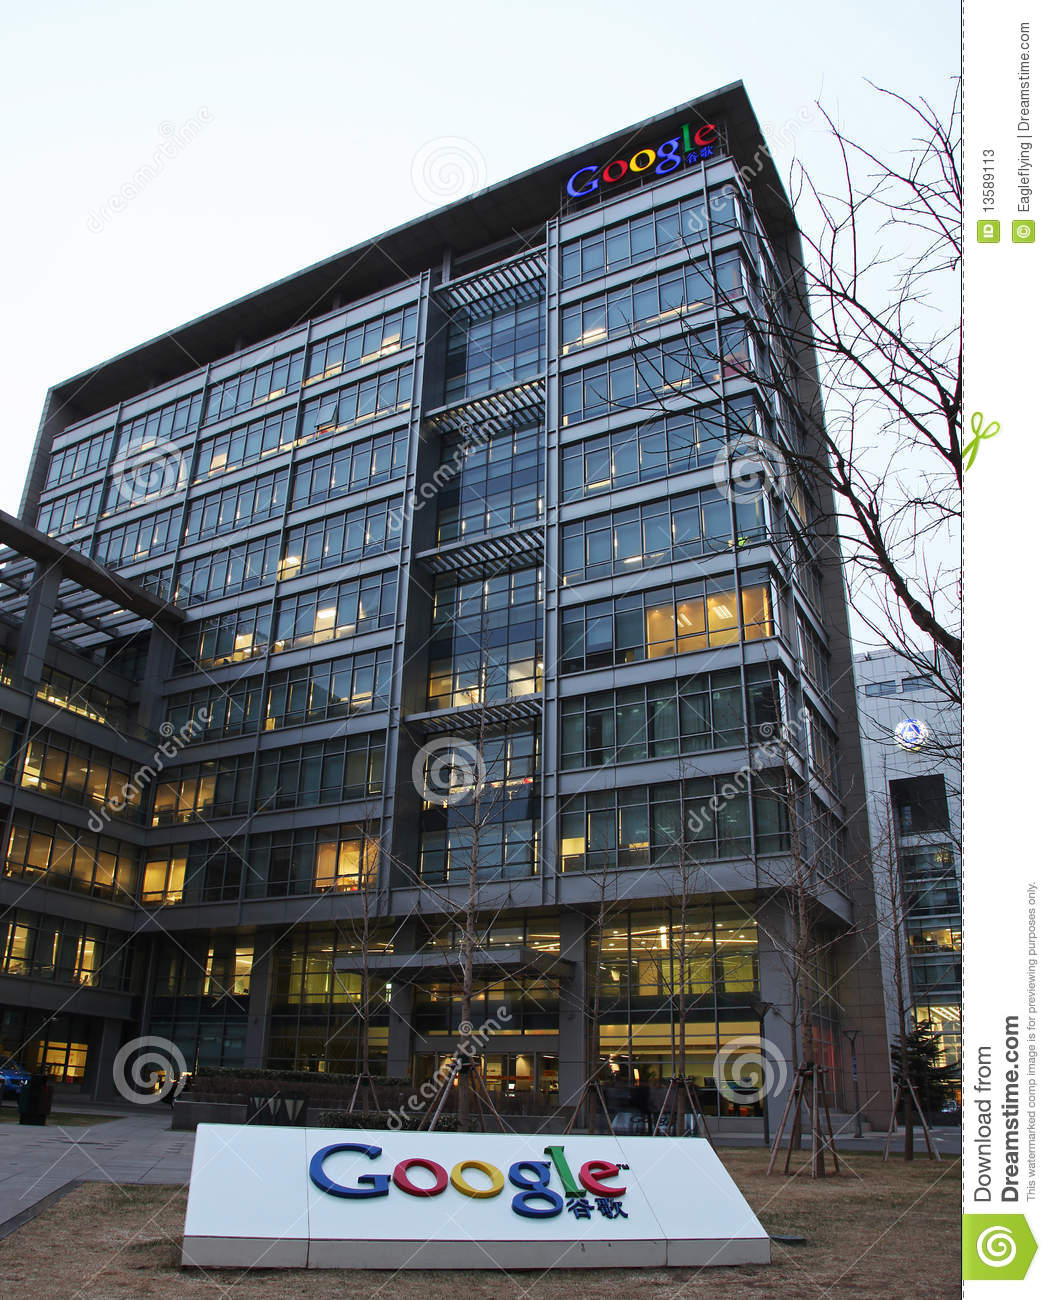 Google 39 s beijing office building editorial stock photo for Google house builder